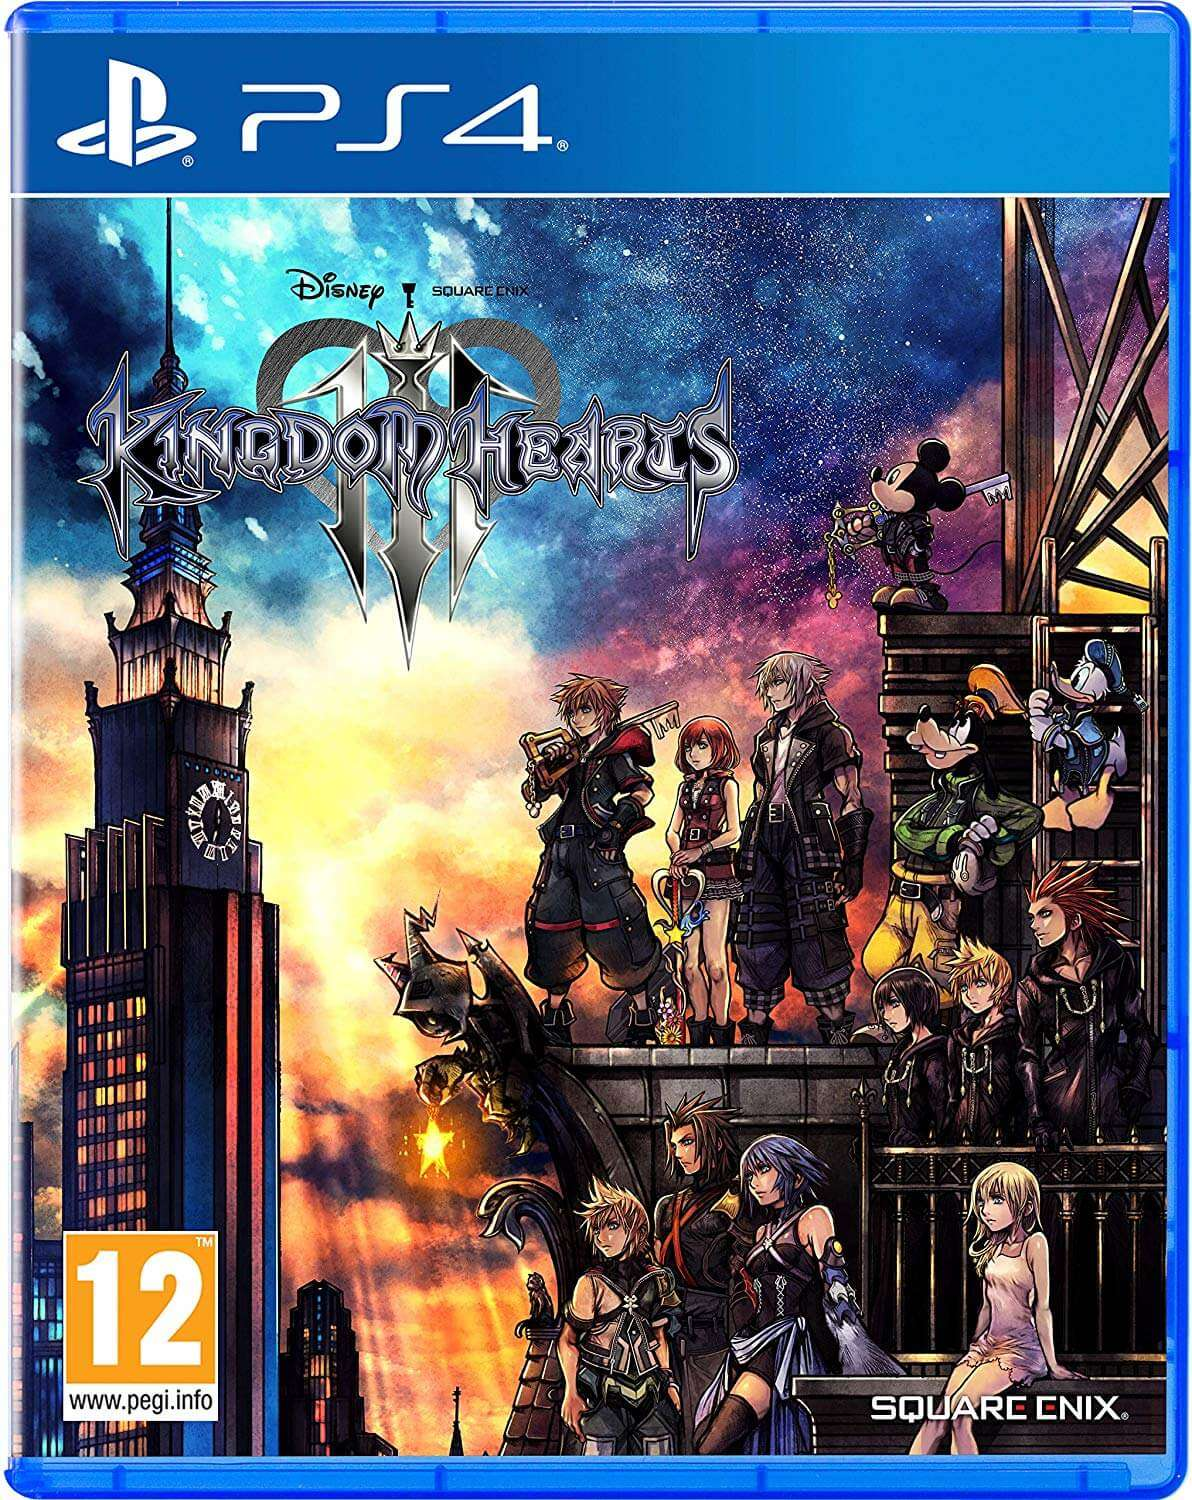 Square Enix Kingdom Hearts III - PlayStation 4